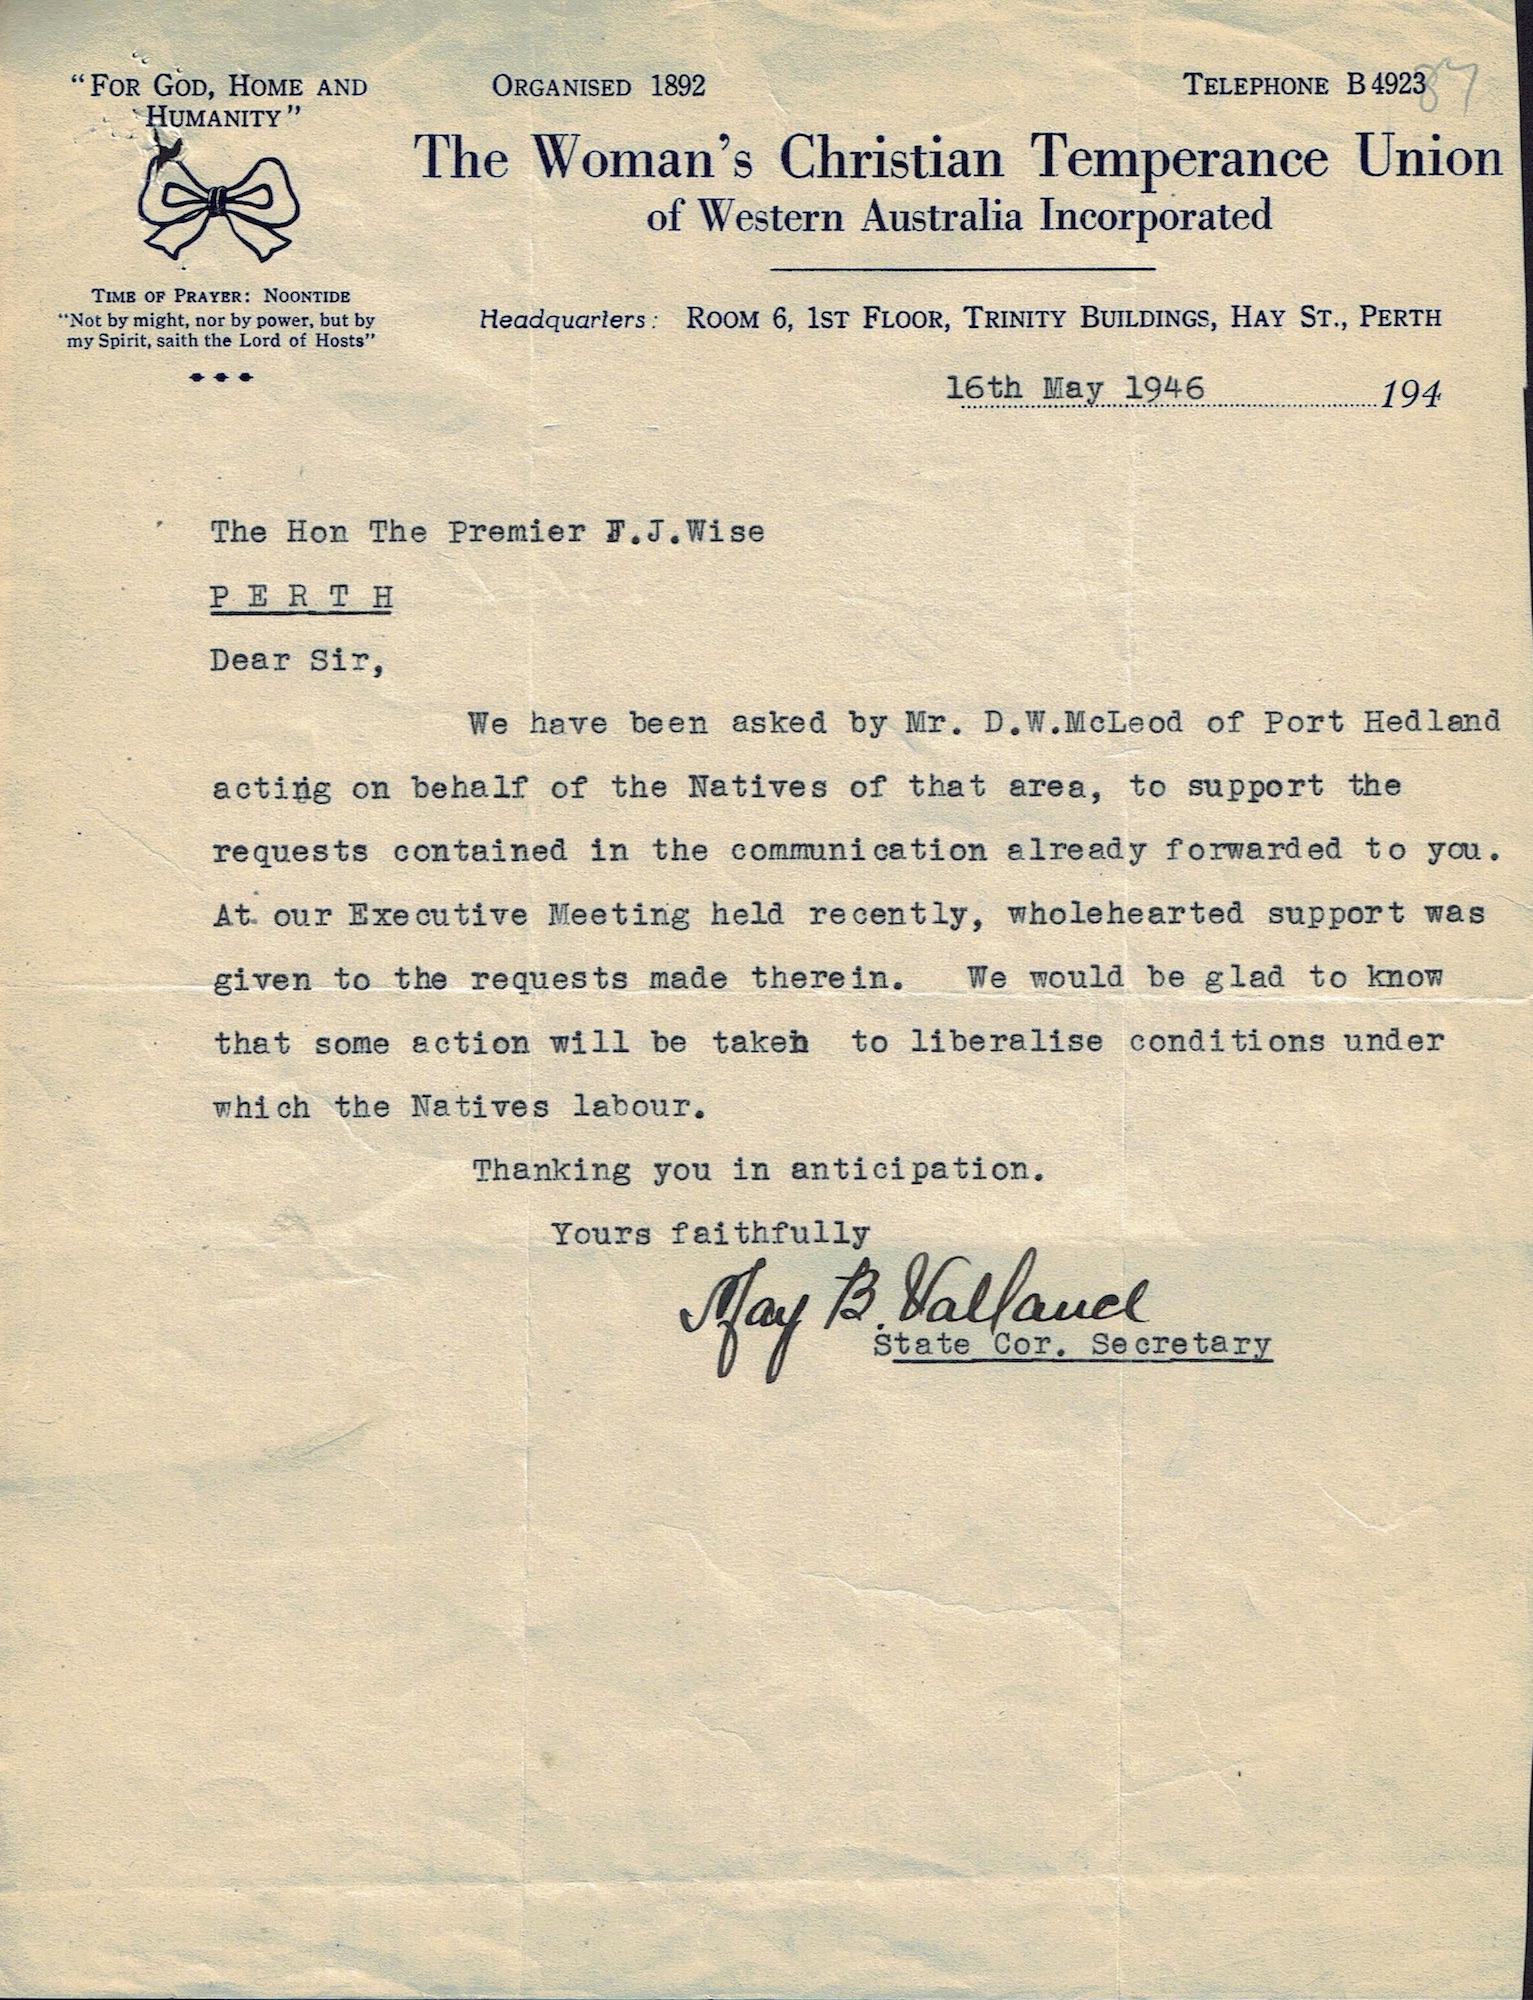 Woman's Christian Temperance Union WA to Premier Wise, 16 May 1946